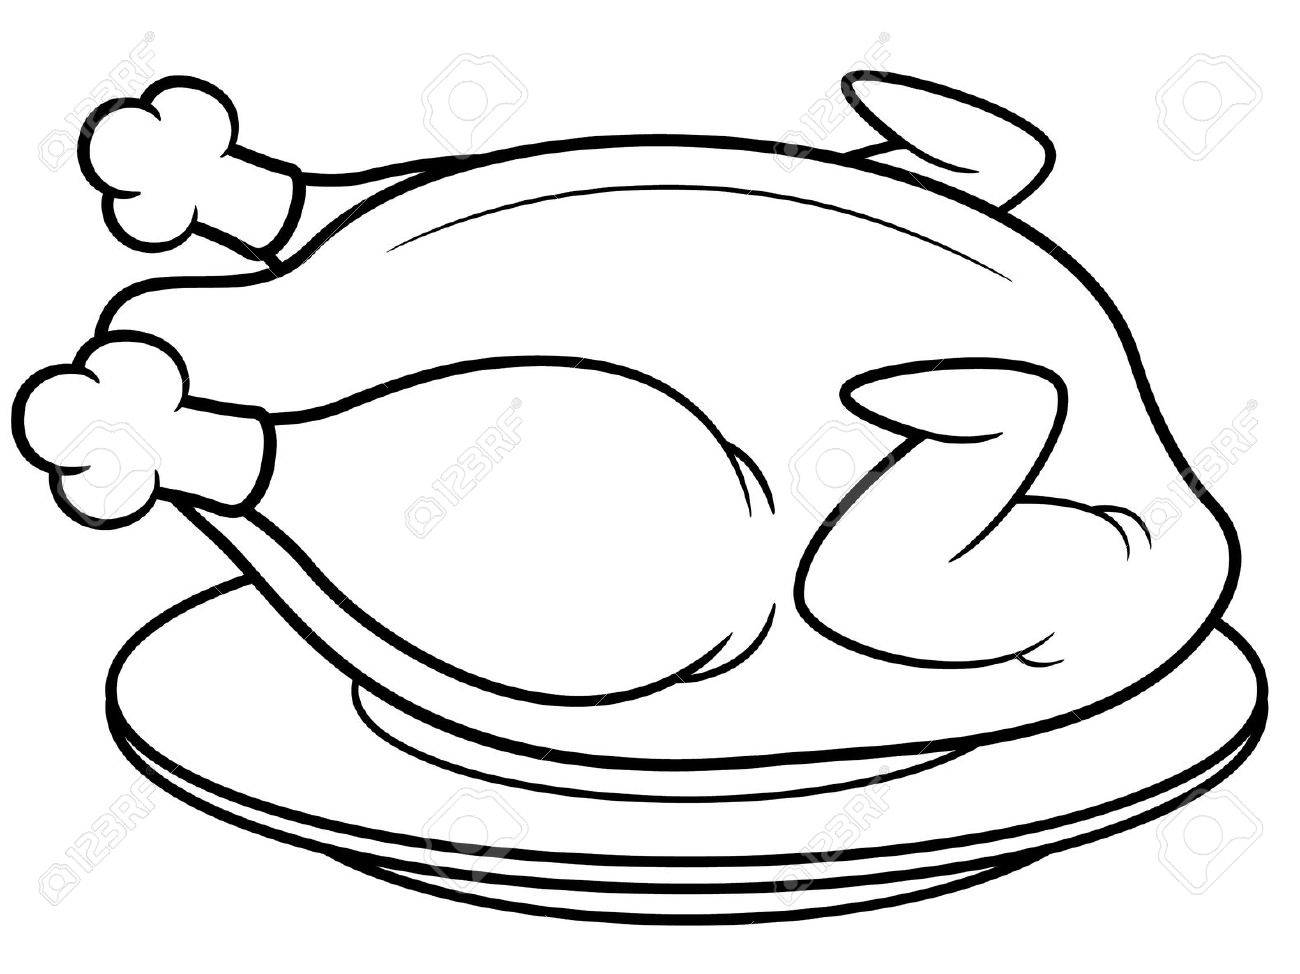 1300x974 Chicken Drawing Cooked Chicken For Free Download